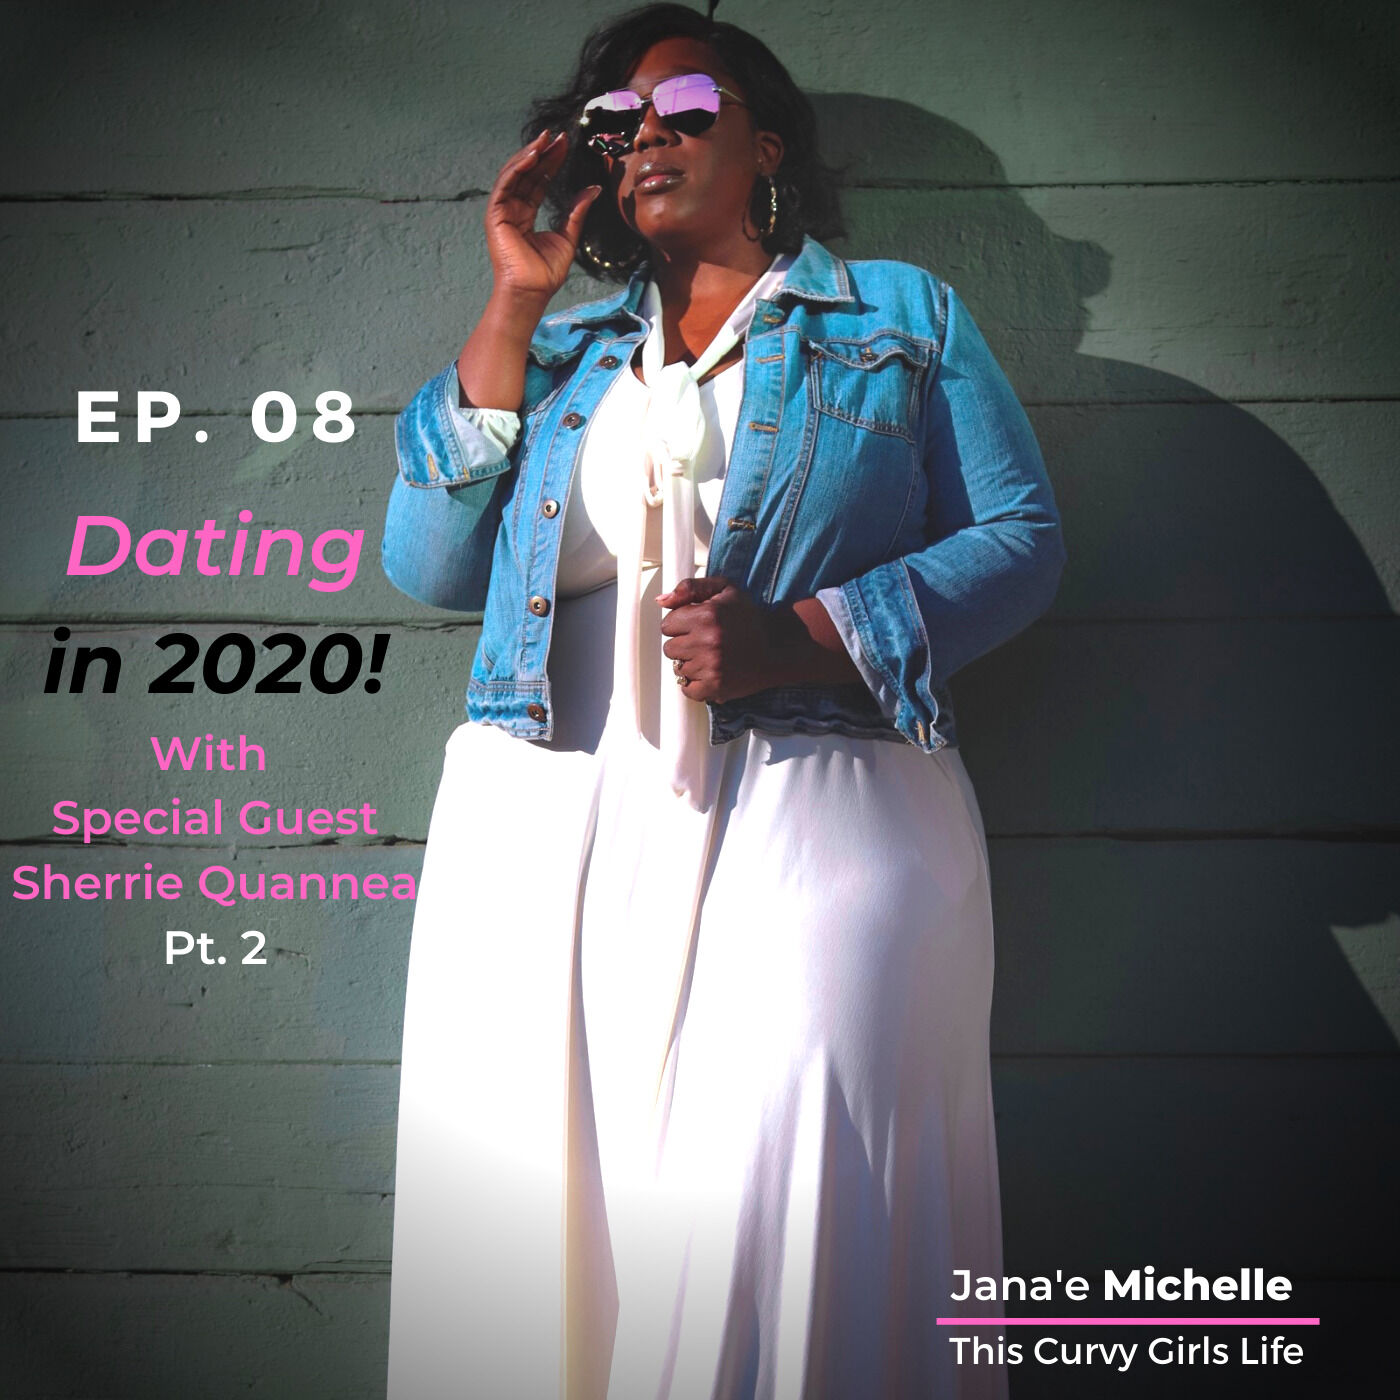 Black Women Dating in 2020 with Sherrie Quannea Pt.2